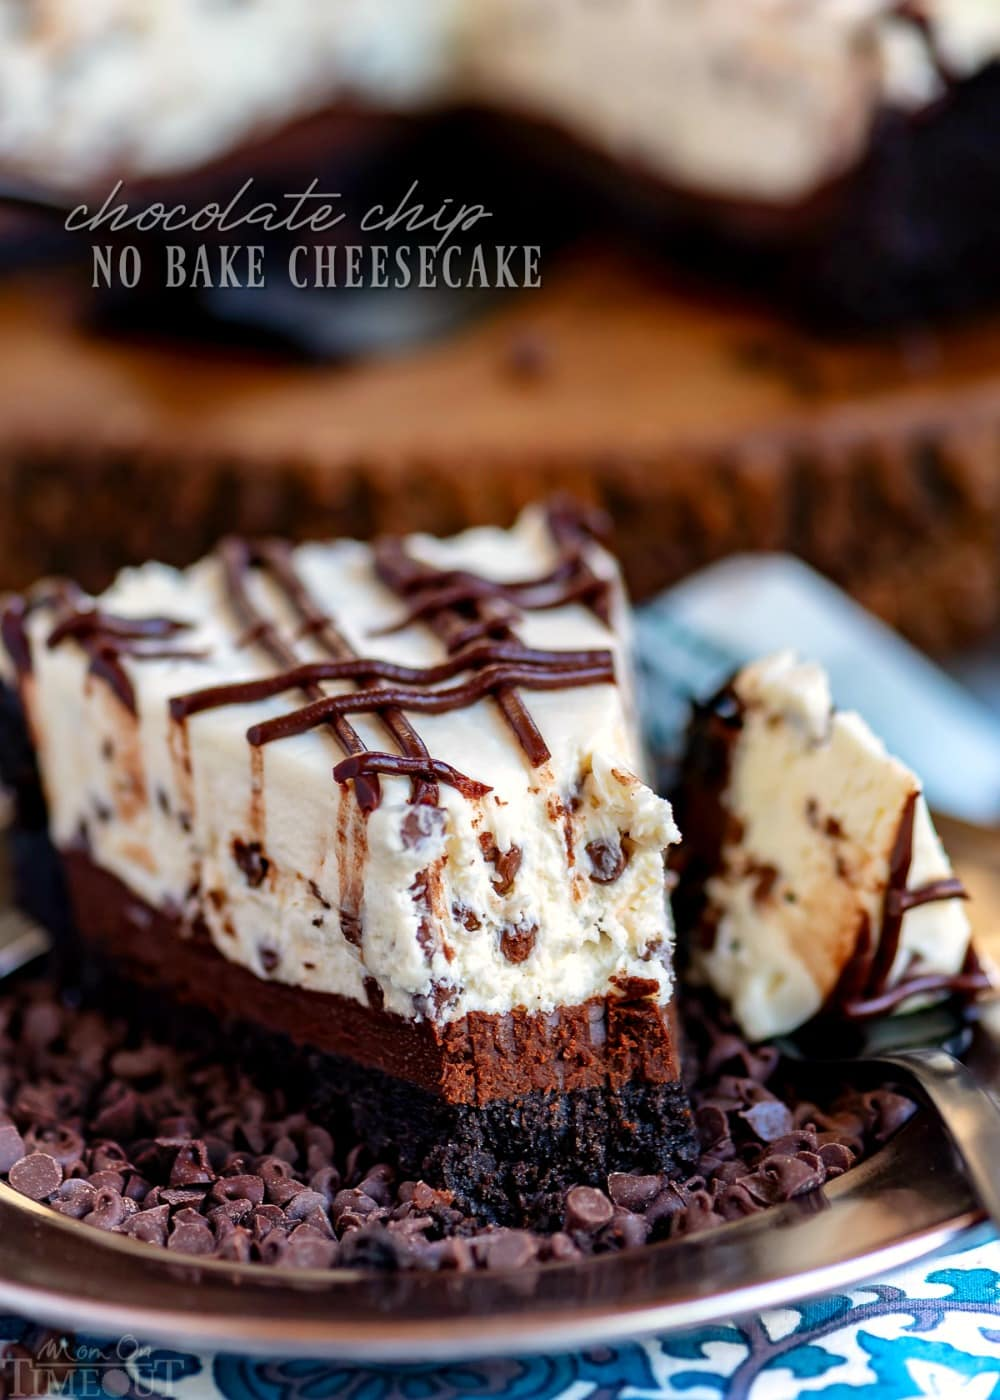 Chocolate Chip No Bake Cheesecake